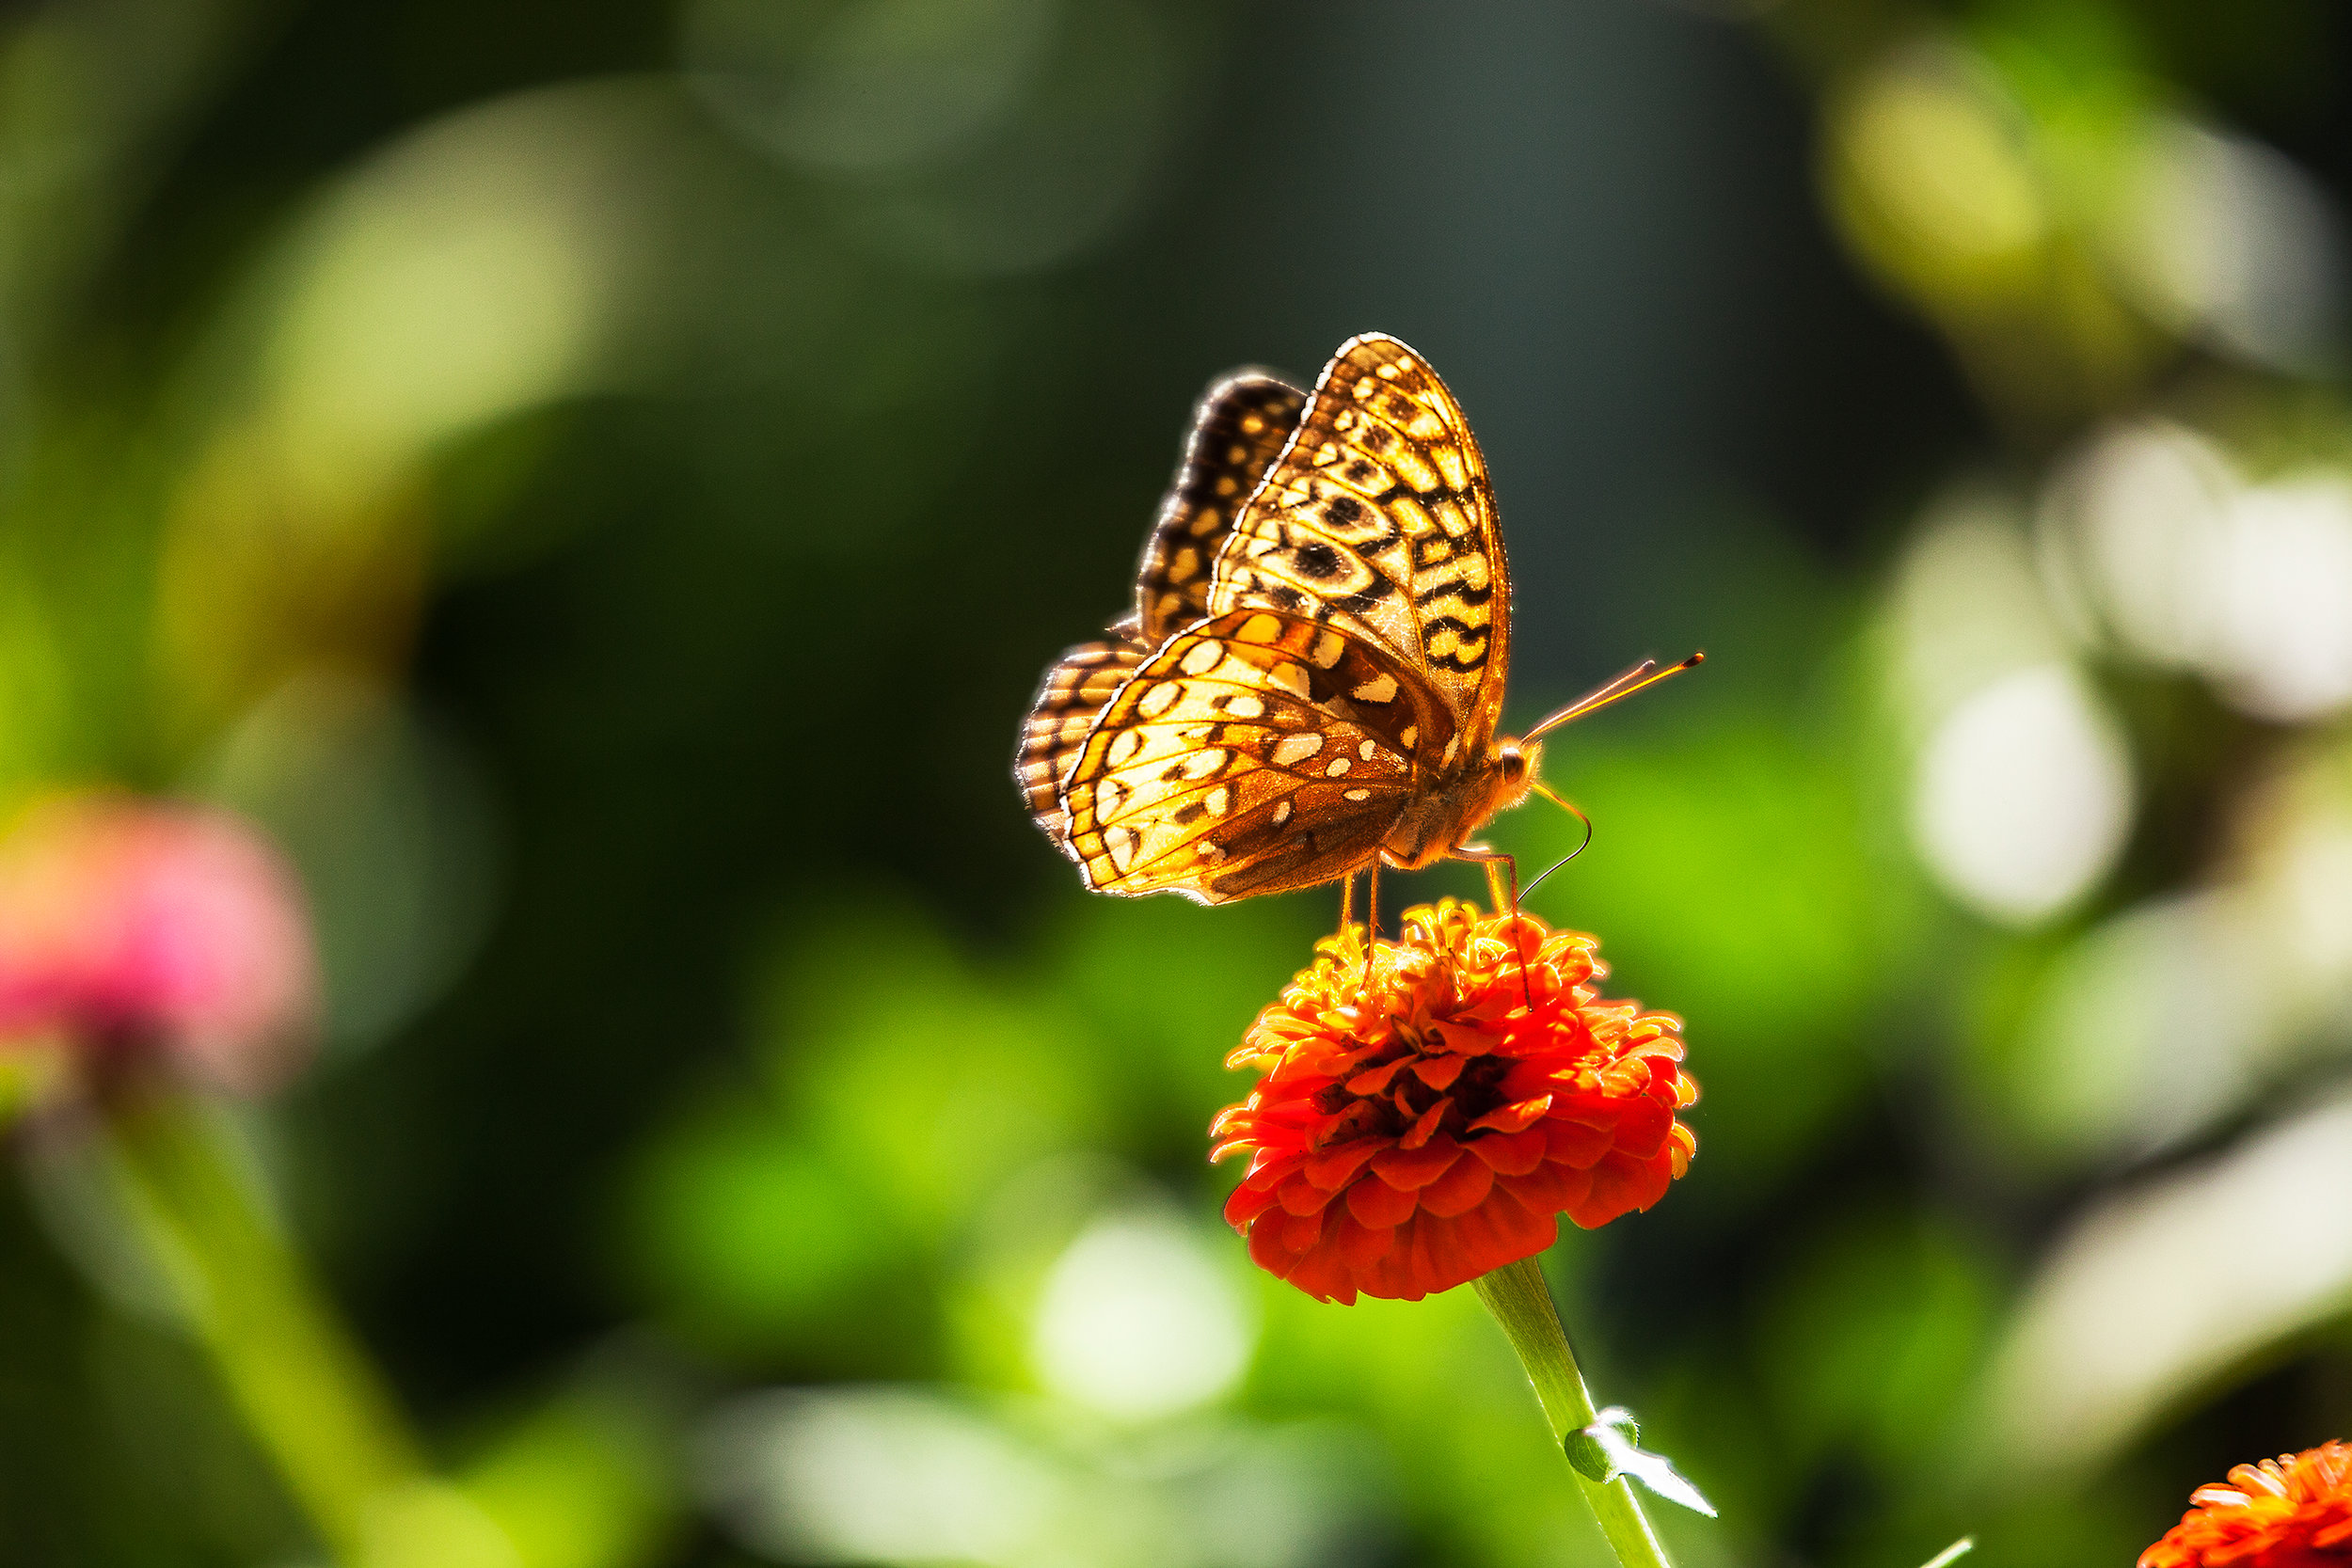 BUTTERFLY-IN-THE-SUMMER--ZINNIA-FLOWER-GARDEN-01-©-JONATHAN-R.-BECKERMAN-PHOTOGRAPHY.jpg